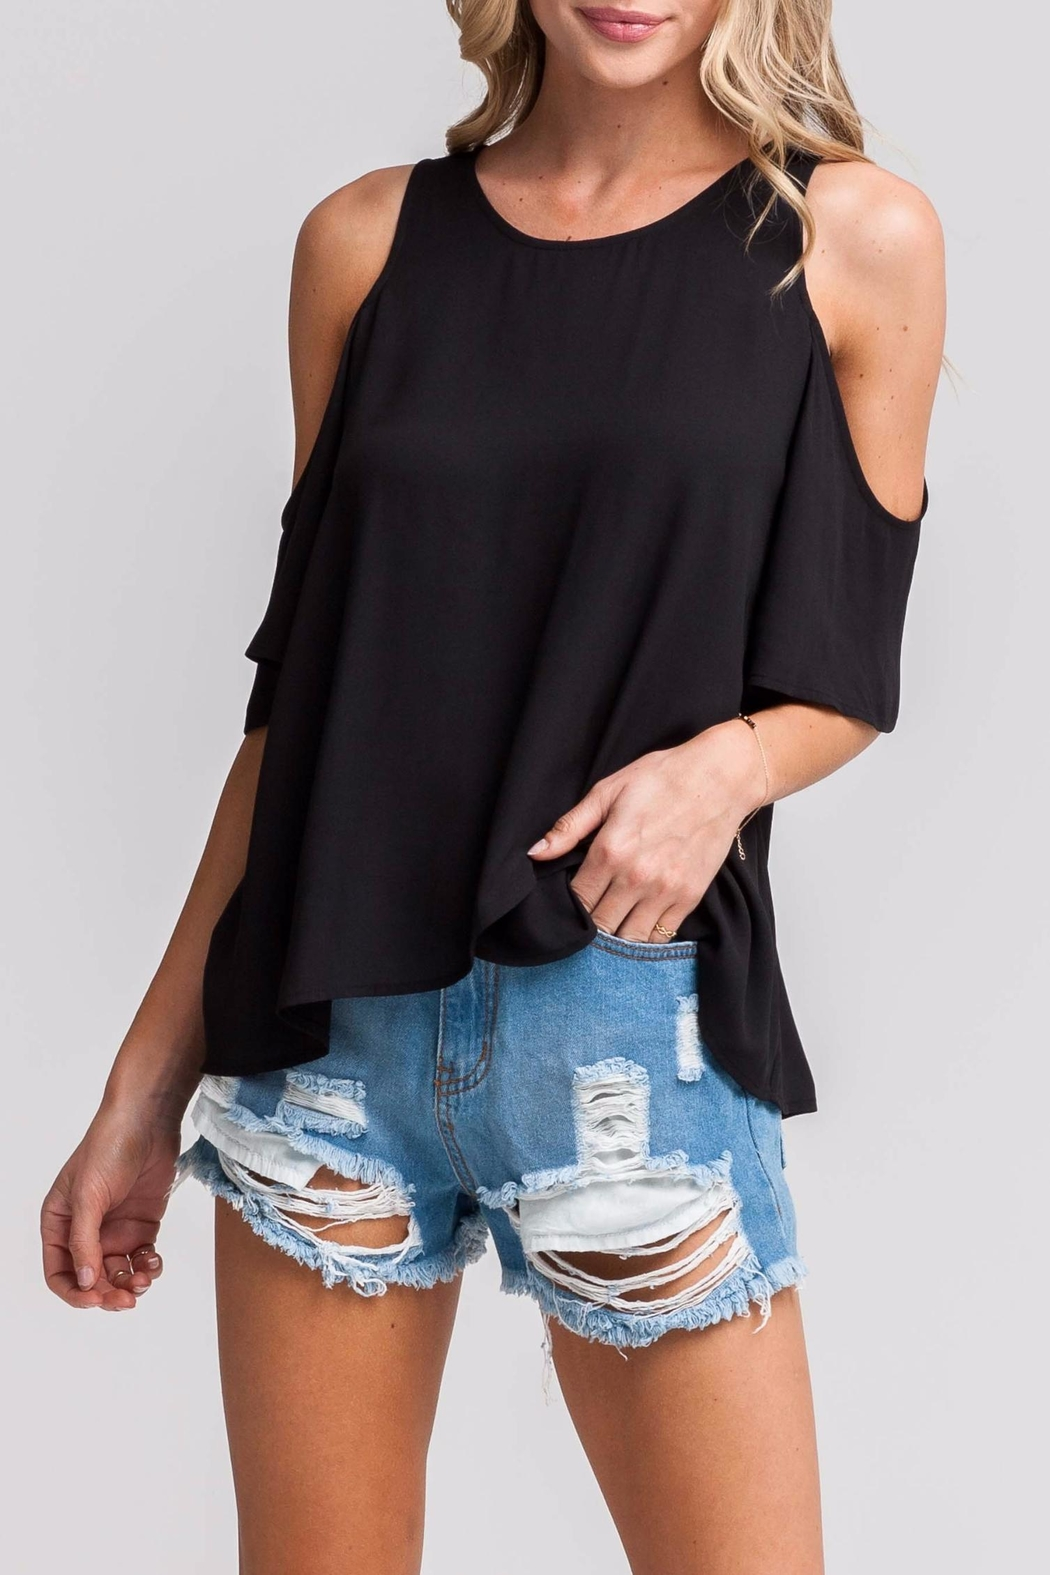 981f407dcd253 Lush Black Cold-Shoulder Top from Los Angeles by AndyLiz Boutique ...